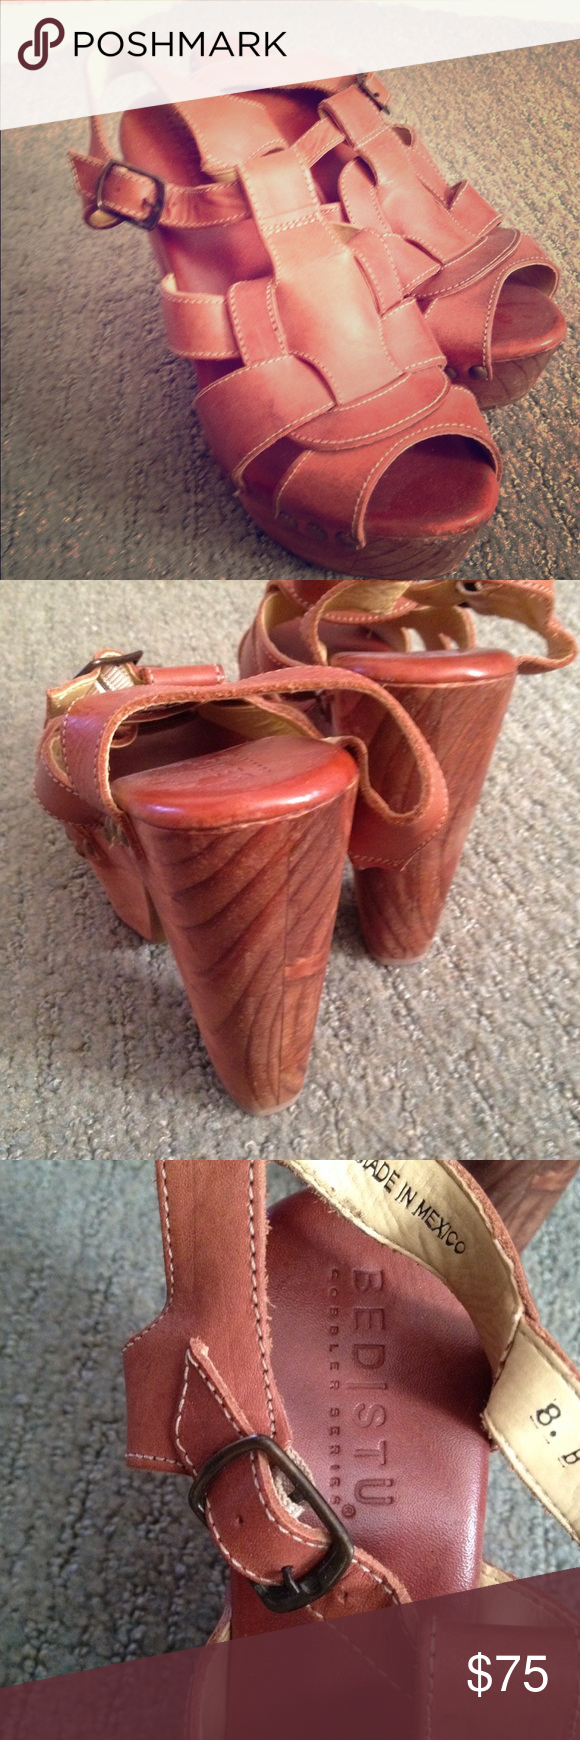 Bed Stu Melissa heels Distressed wooden and leather wedge/heel. Worn 2x ... Slight scratches on toe but shoe is made to look distressed so doesn't take away from look. These are perfect for summer. I love them but too hard to chase my kiddos around while wearing them. 5 inch heel Bed Stu Shoes Heels